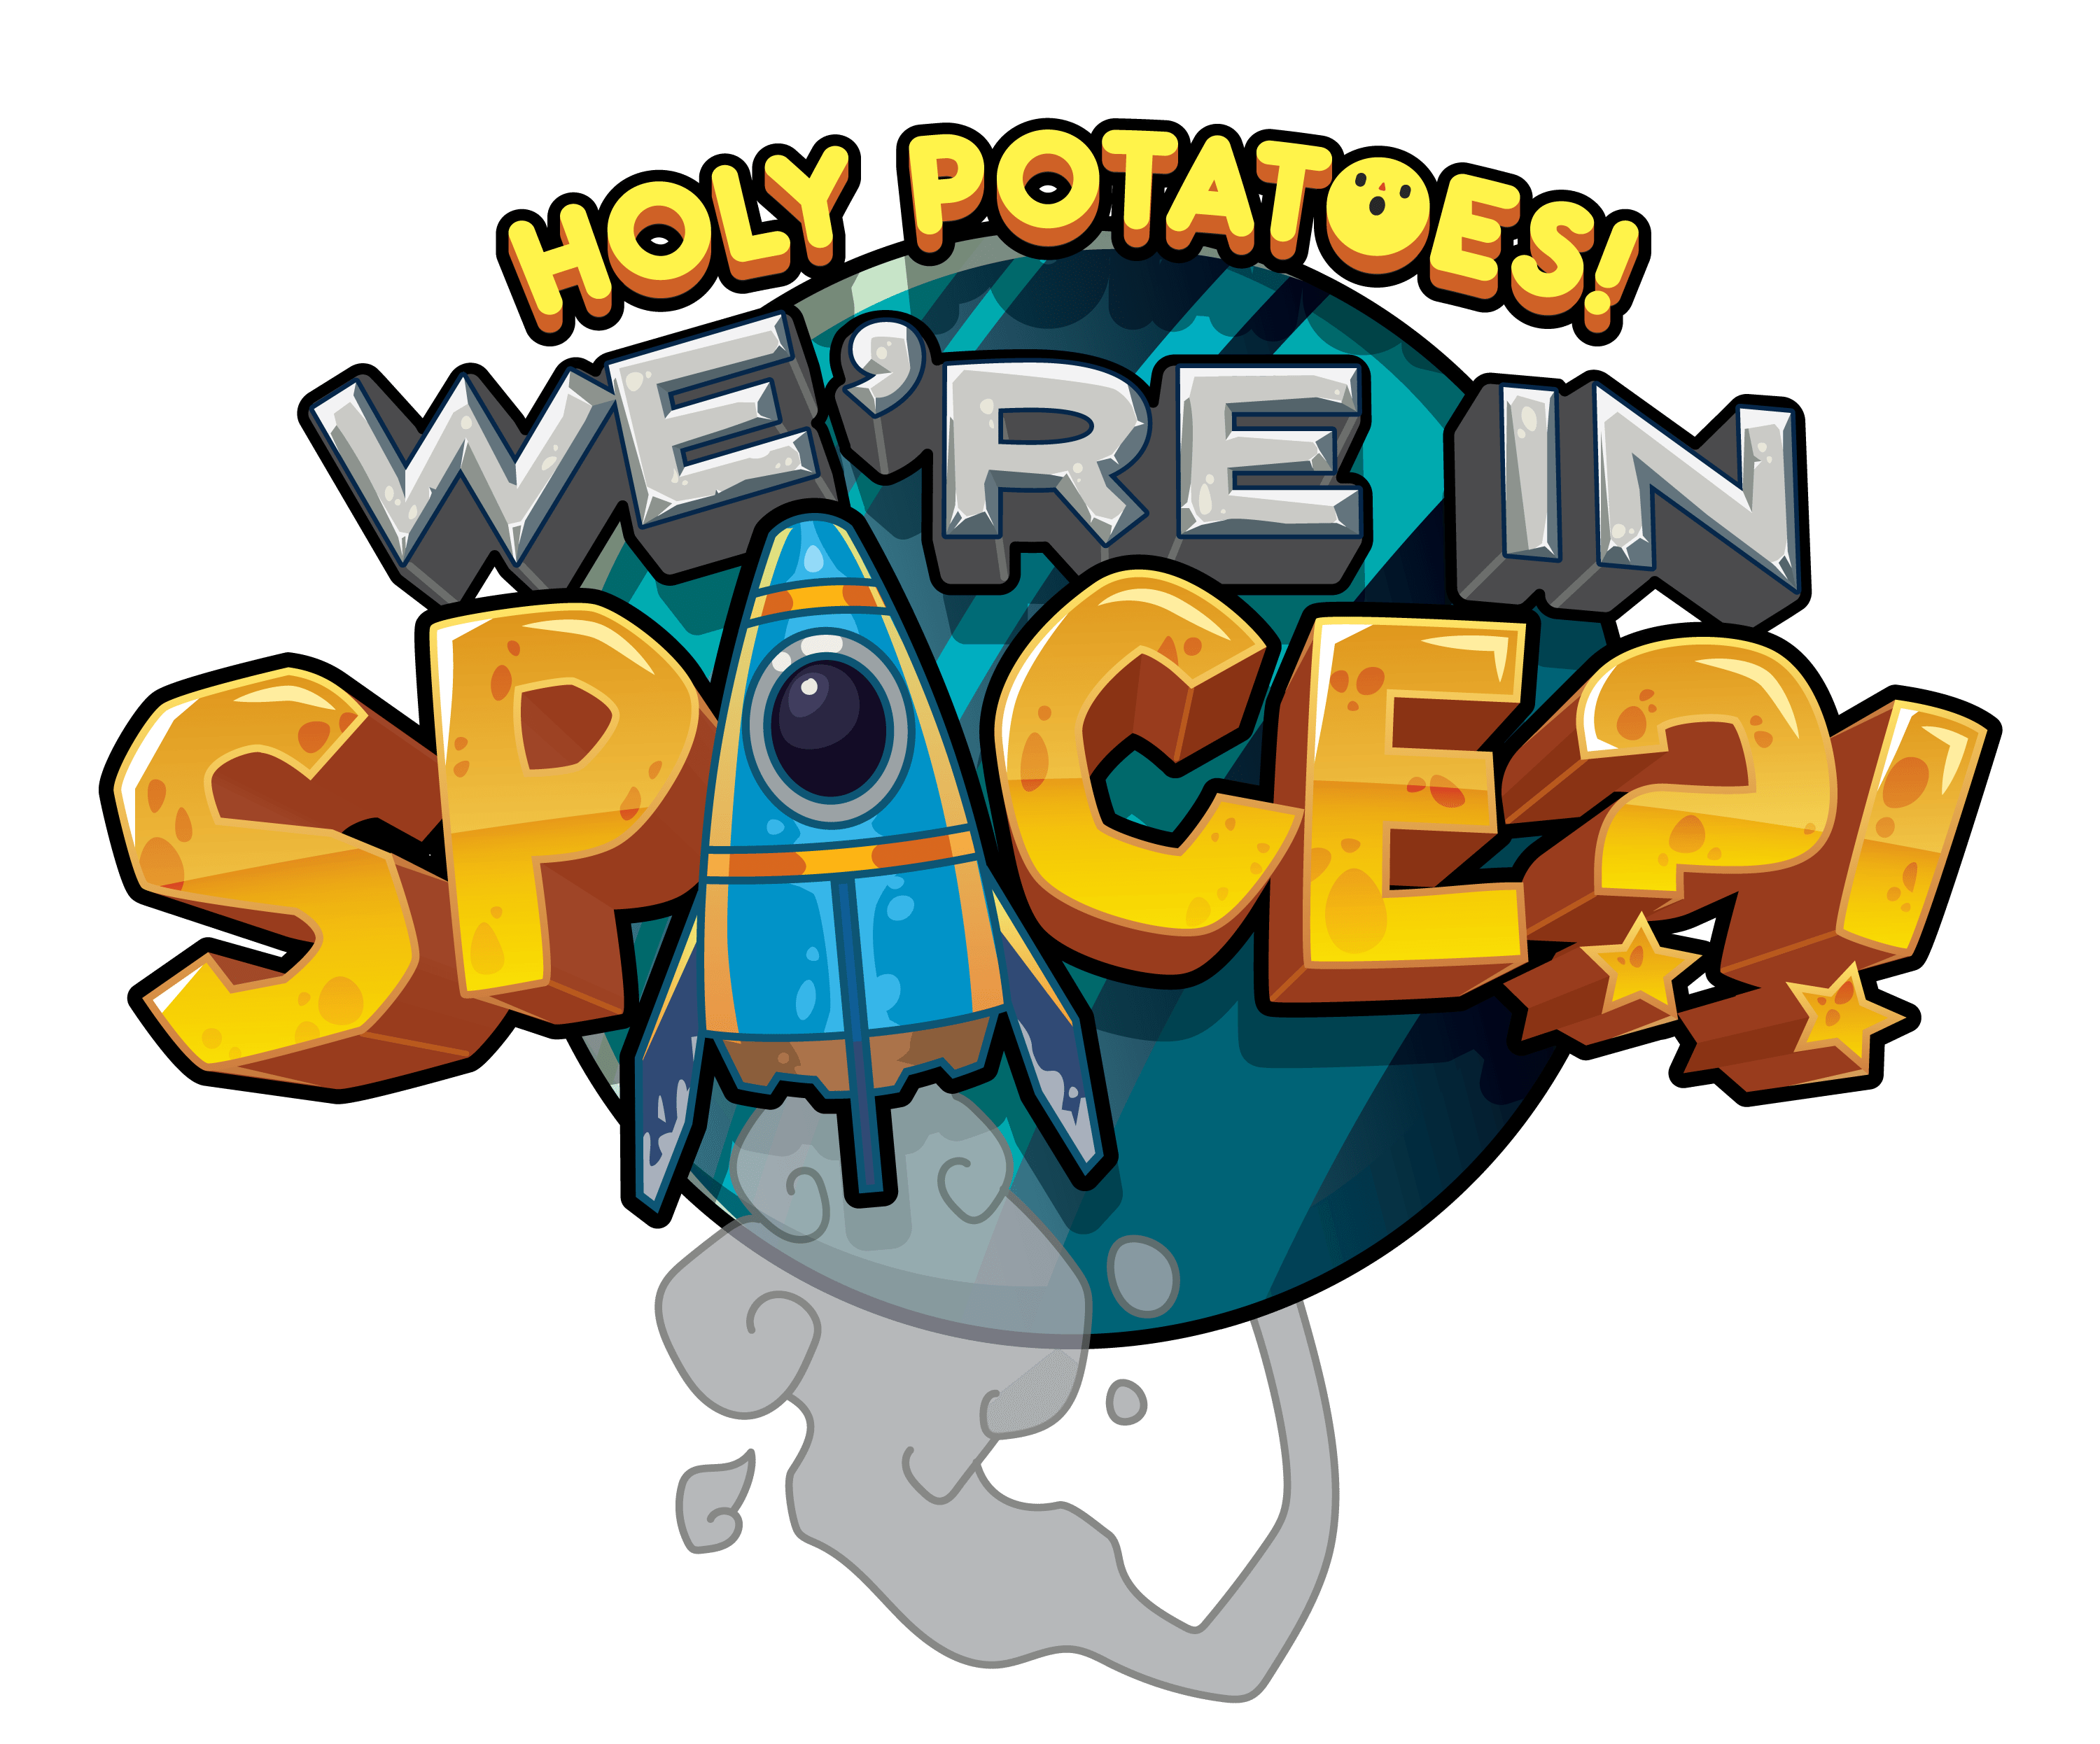 Holy Potatoes! We're in Space?! Announced by Daedalic and Daylight Studios